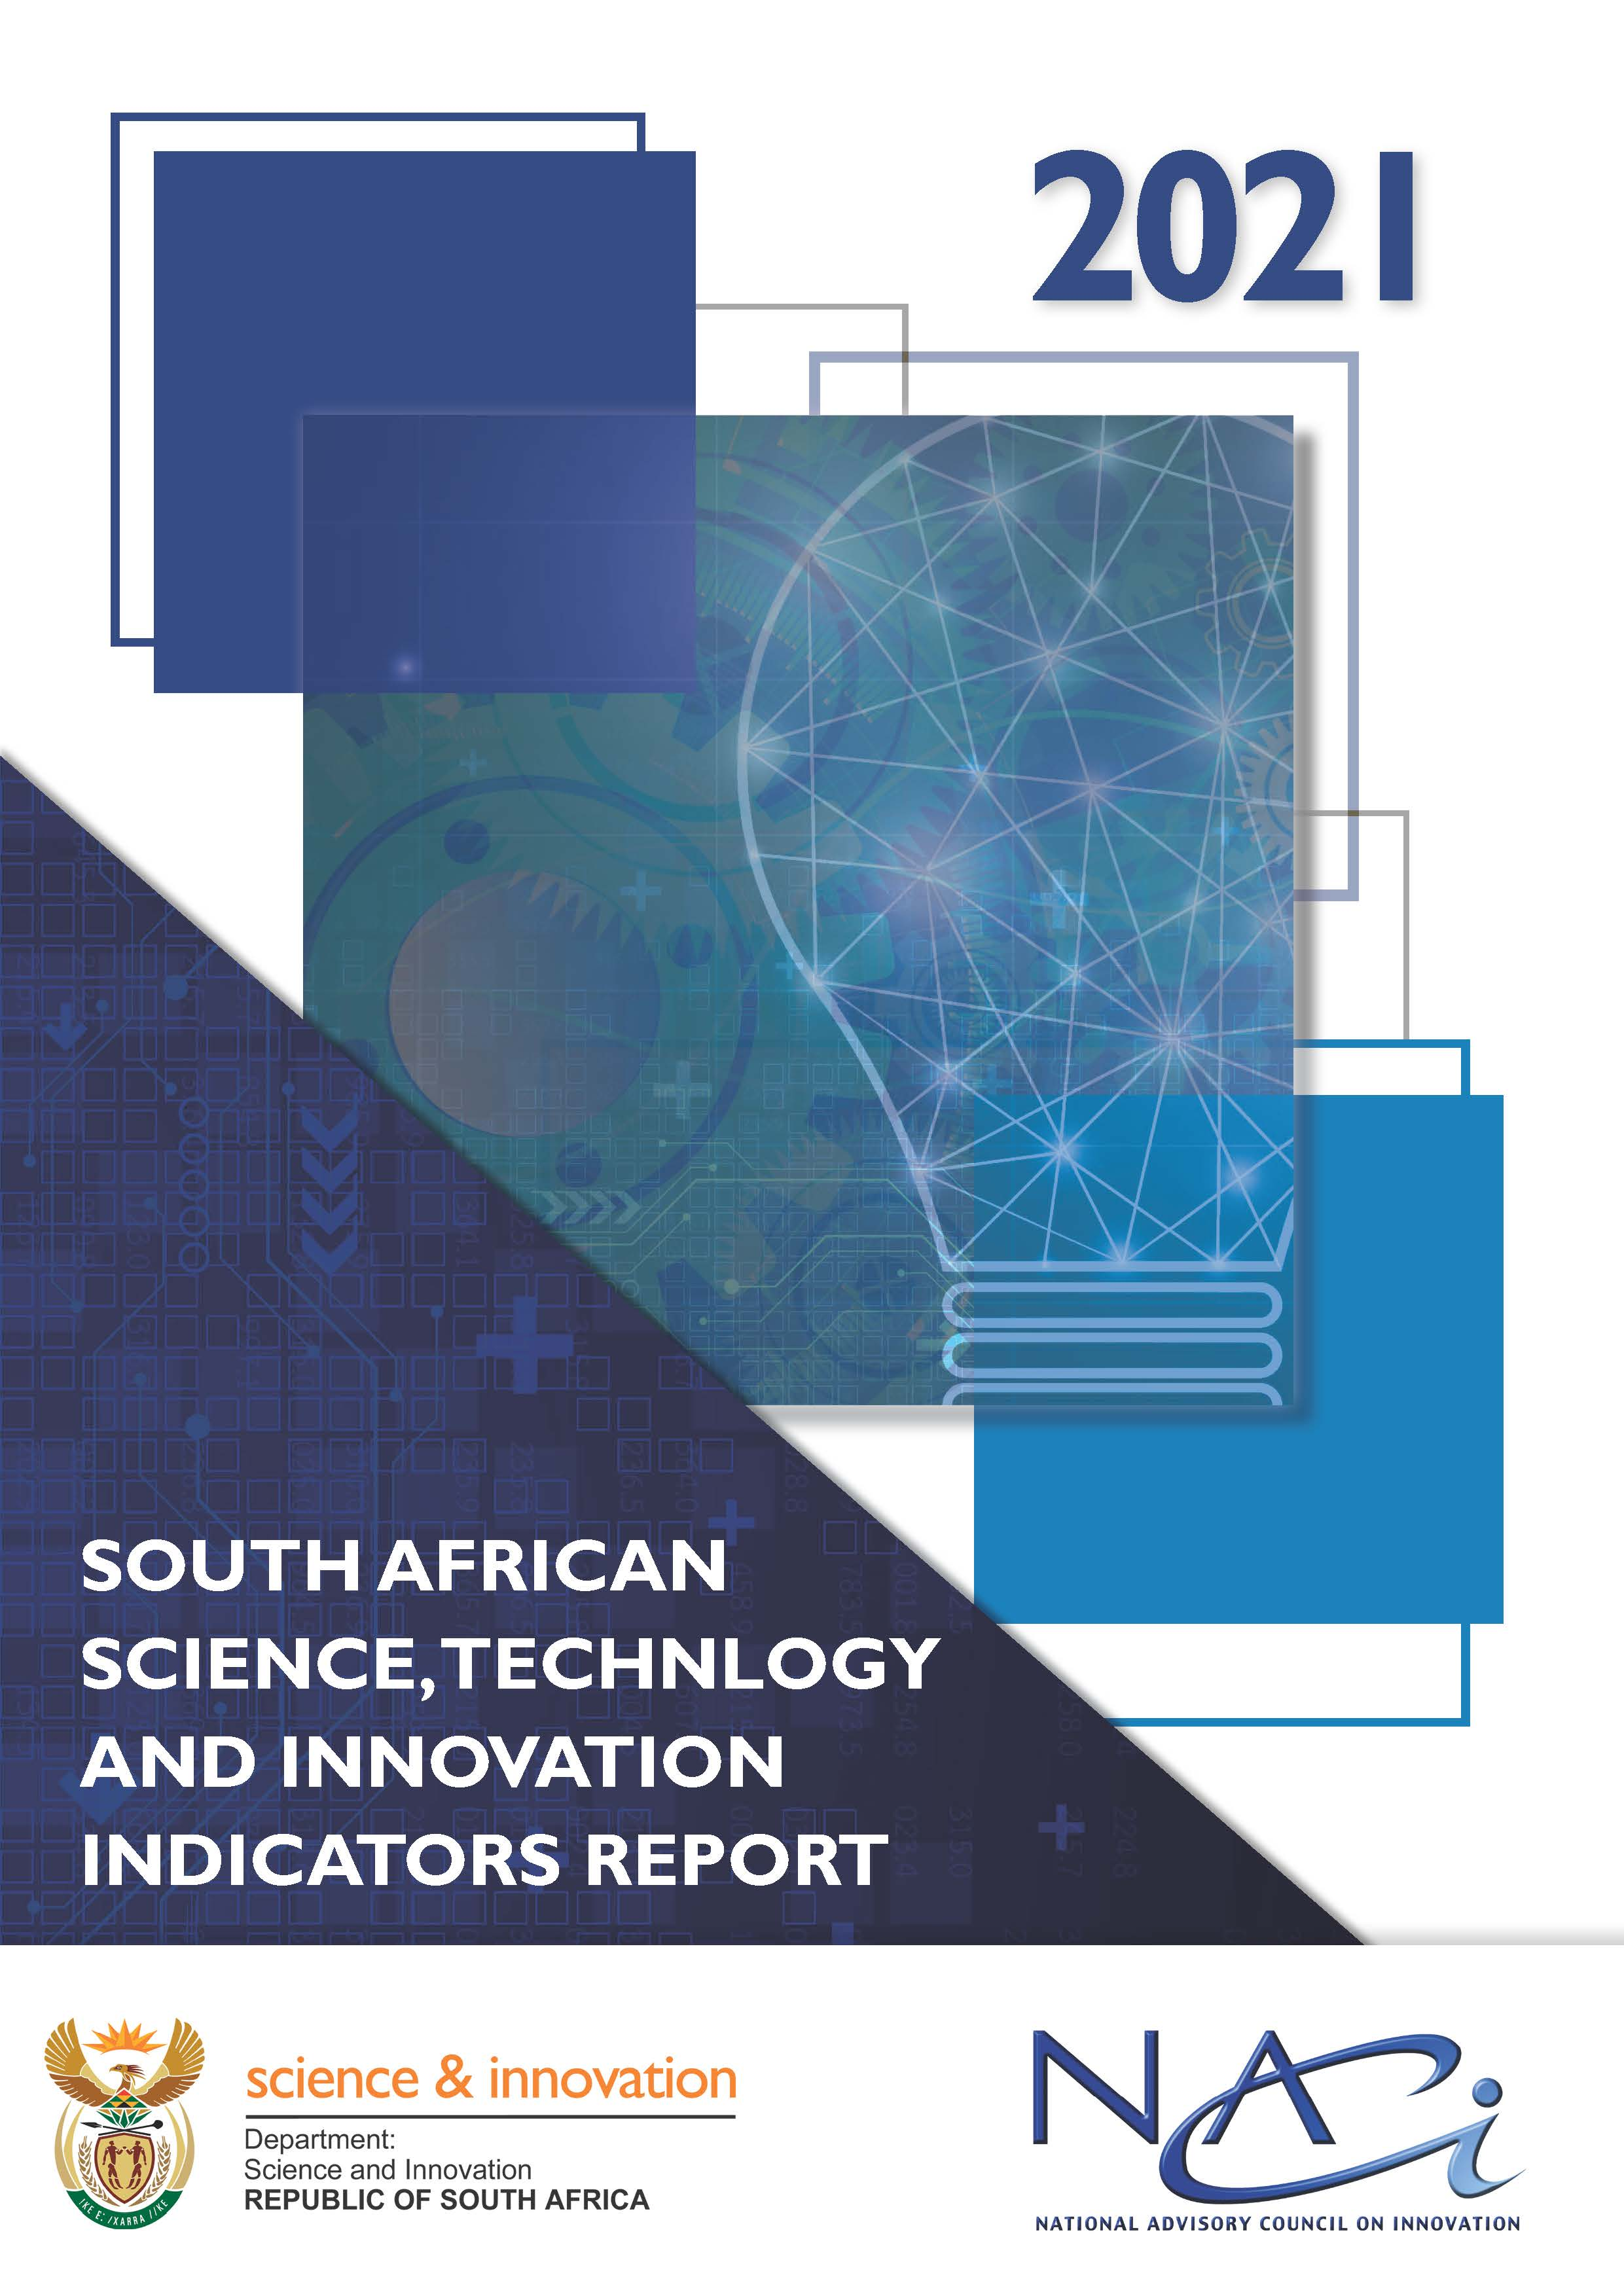 South African Science, Technology and Innovation Indicators Report 2021